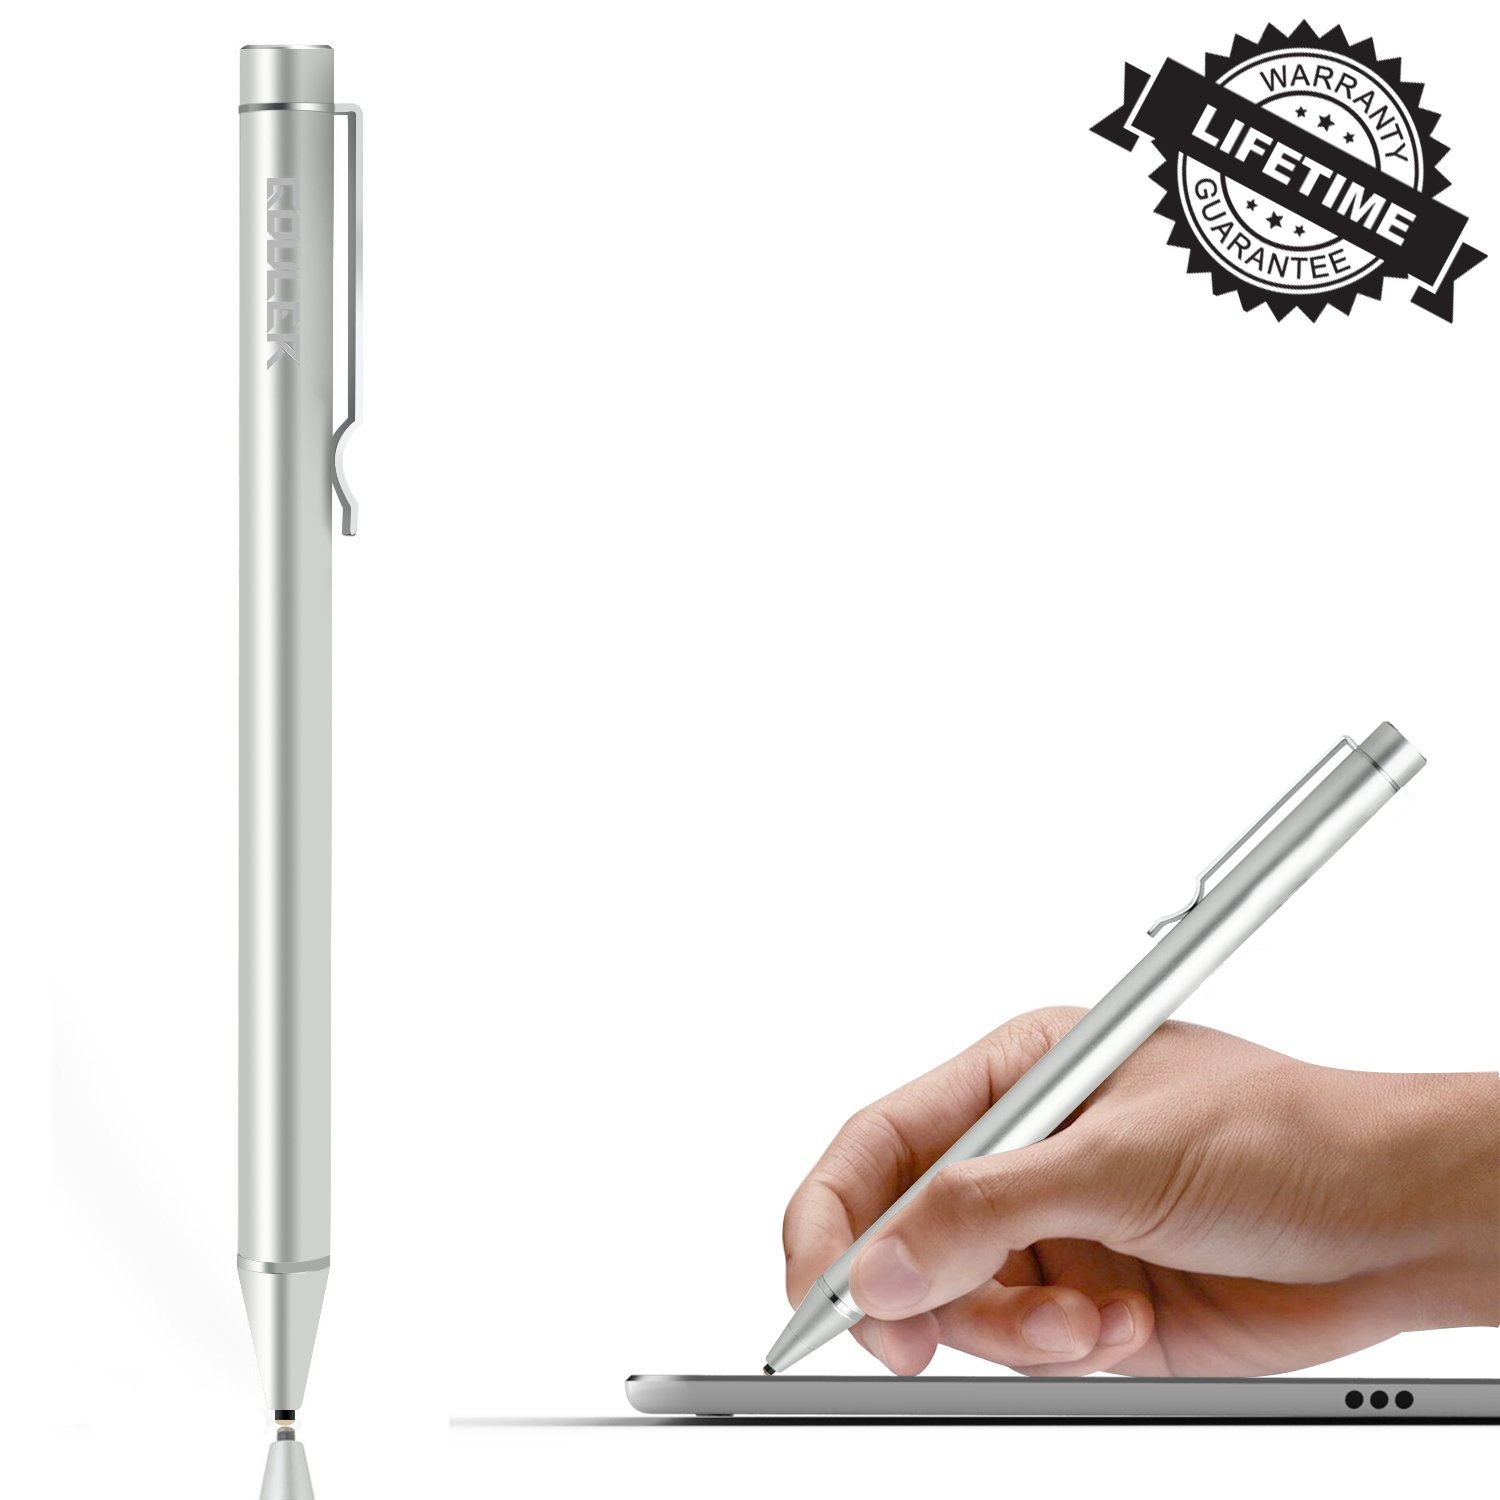 High-Precision Active Stylus Pen with Fine Tip for iPad/iPhone X/8/8 Plus, Samsung Tablets and Other Capacitive Touch Screen Devices(Sliver)